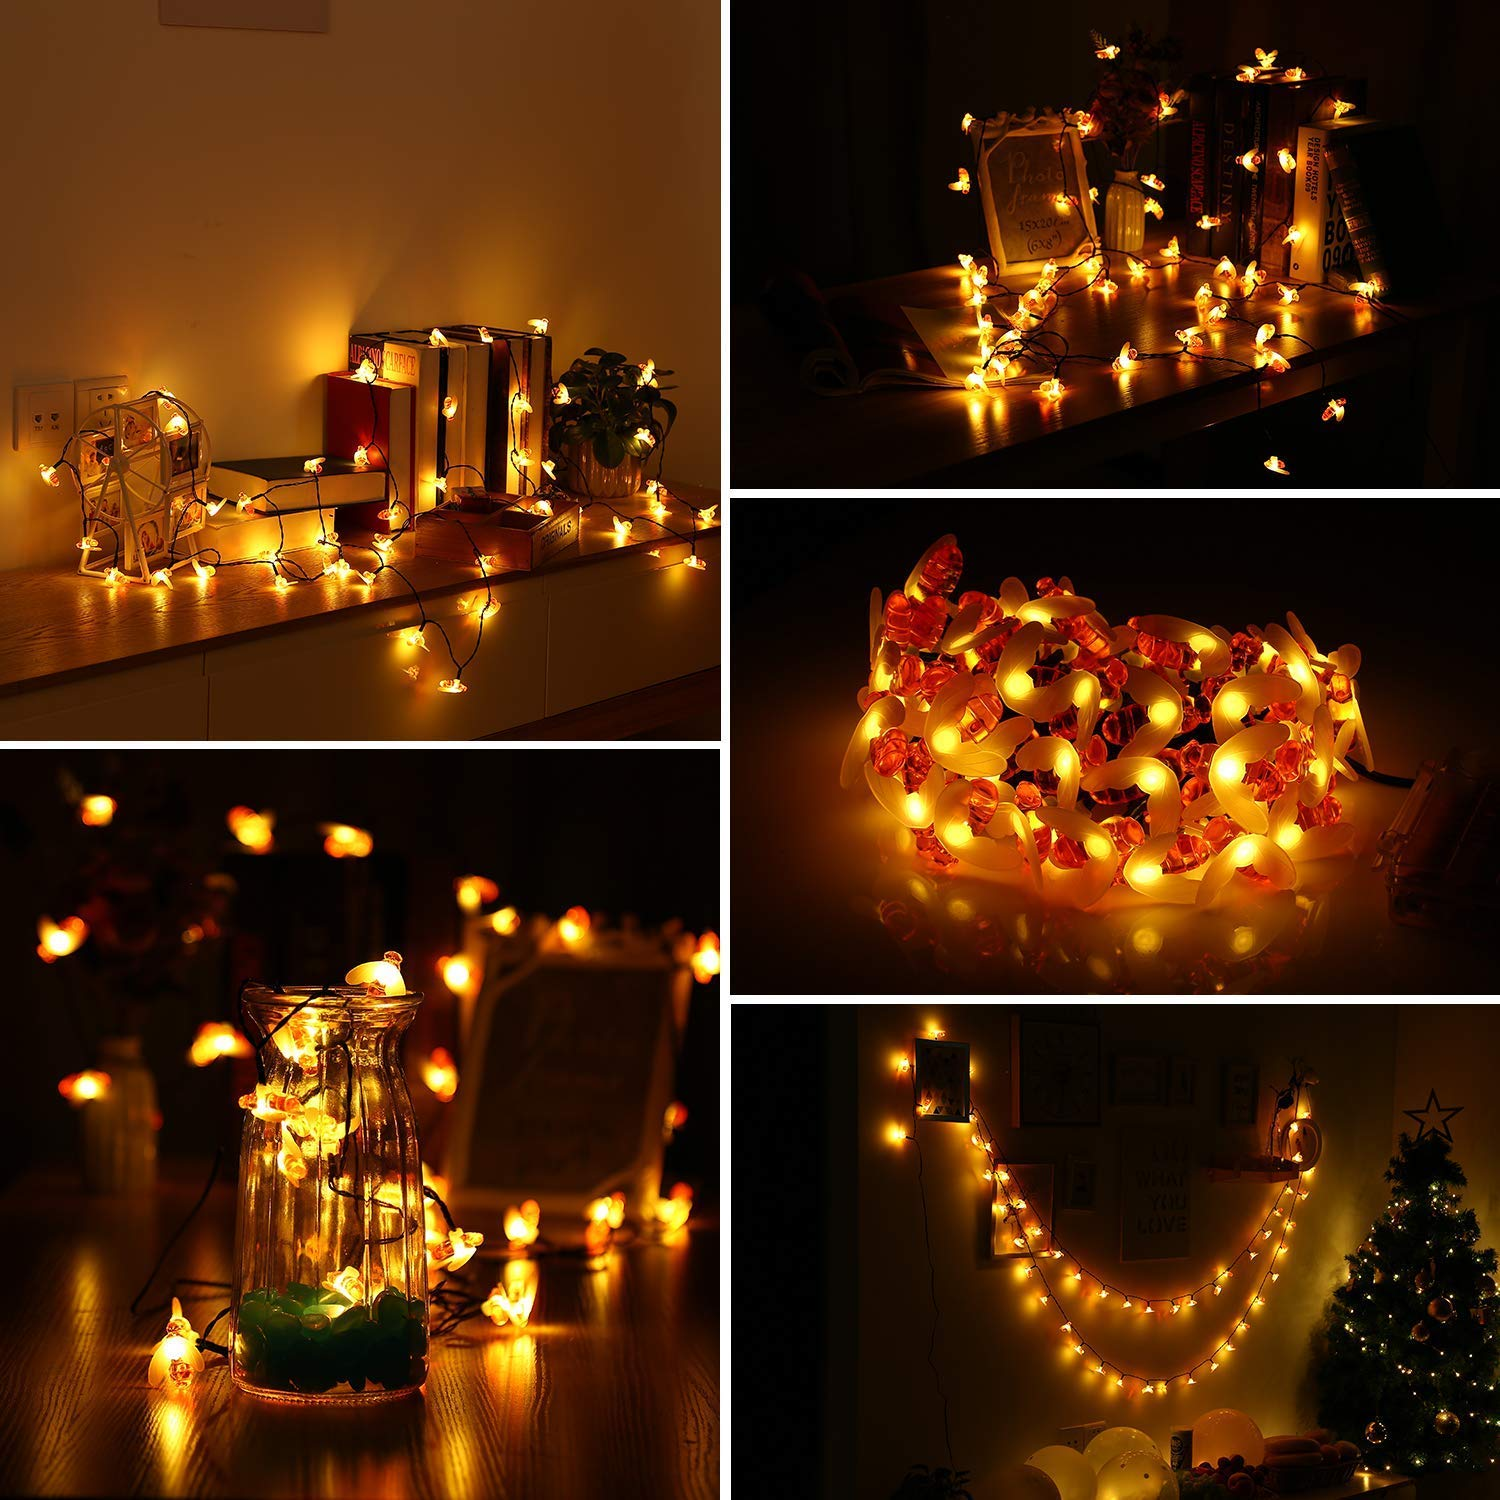 INLIFE Solar Bee String Lights, 23FT 50 LED Decorative Fairy Lights Battery Powered